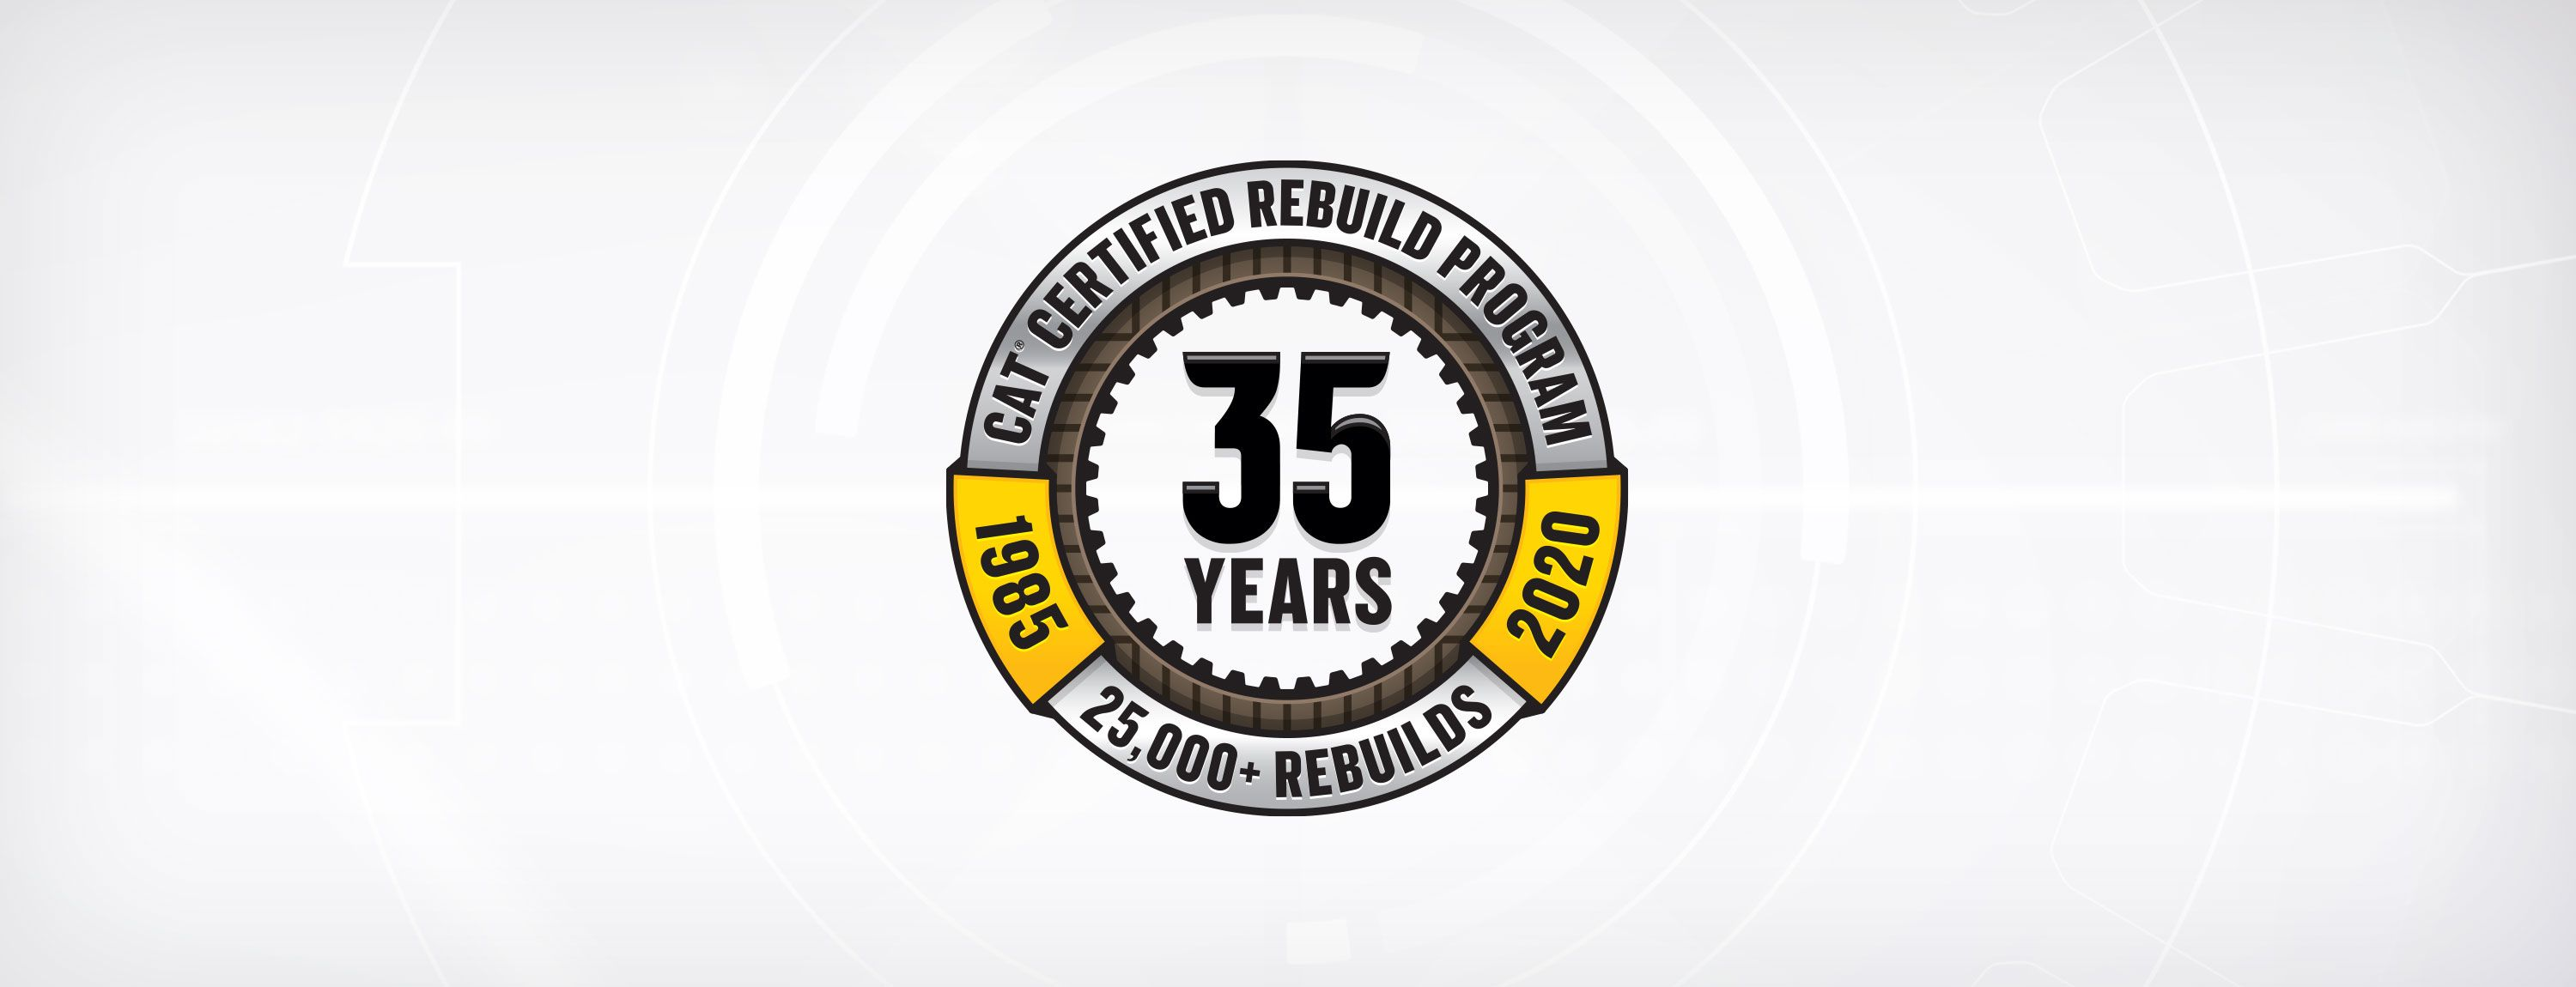 Cat Certified Rebuild 35th Anniversary Sweepstakes & Offers